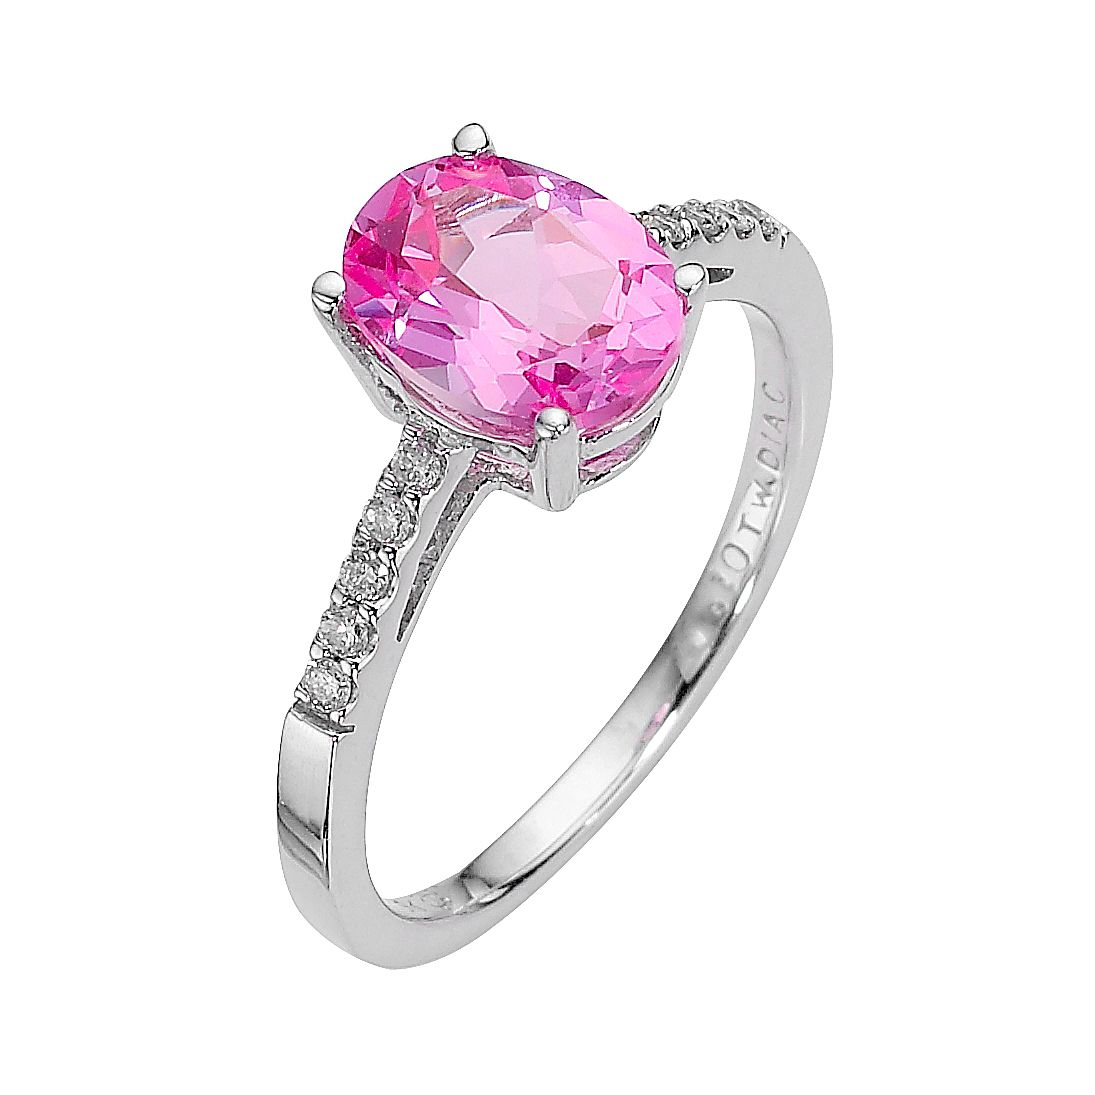 diamond rings and diamonds jewellery purple natural sapphire cocktail ring pink